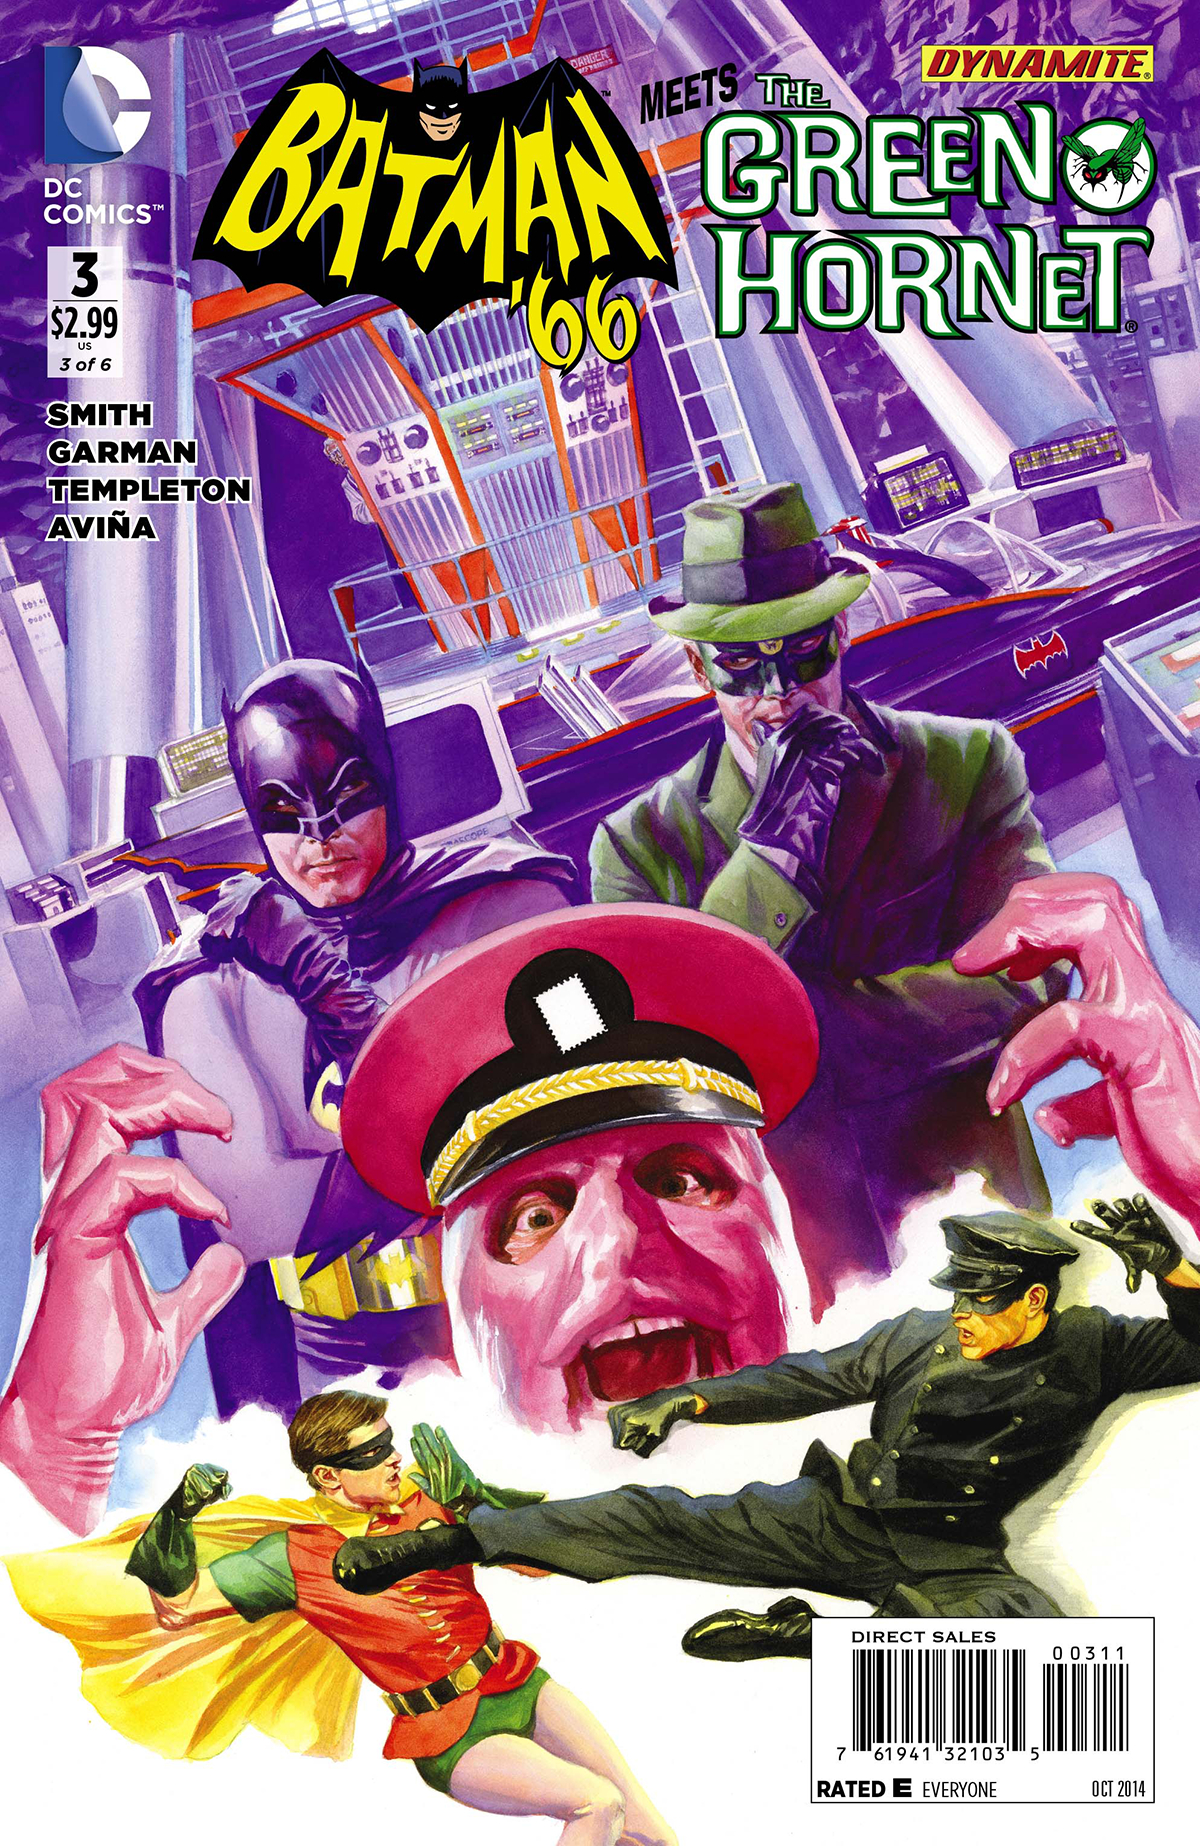 BATMAN 66 MEETS GREEN HORNET #3